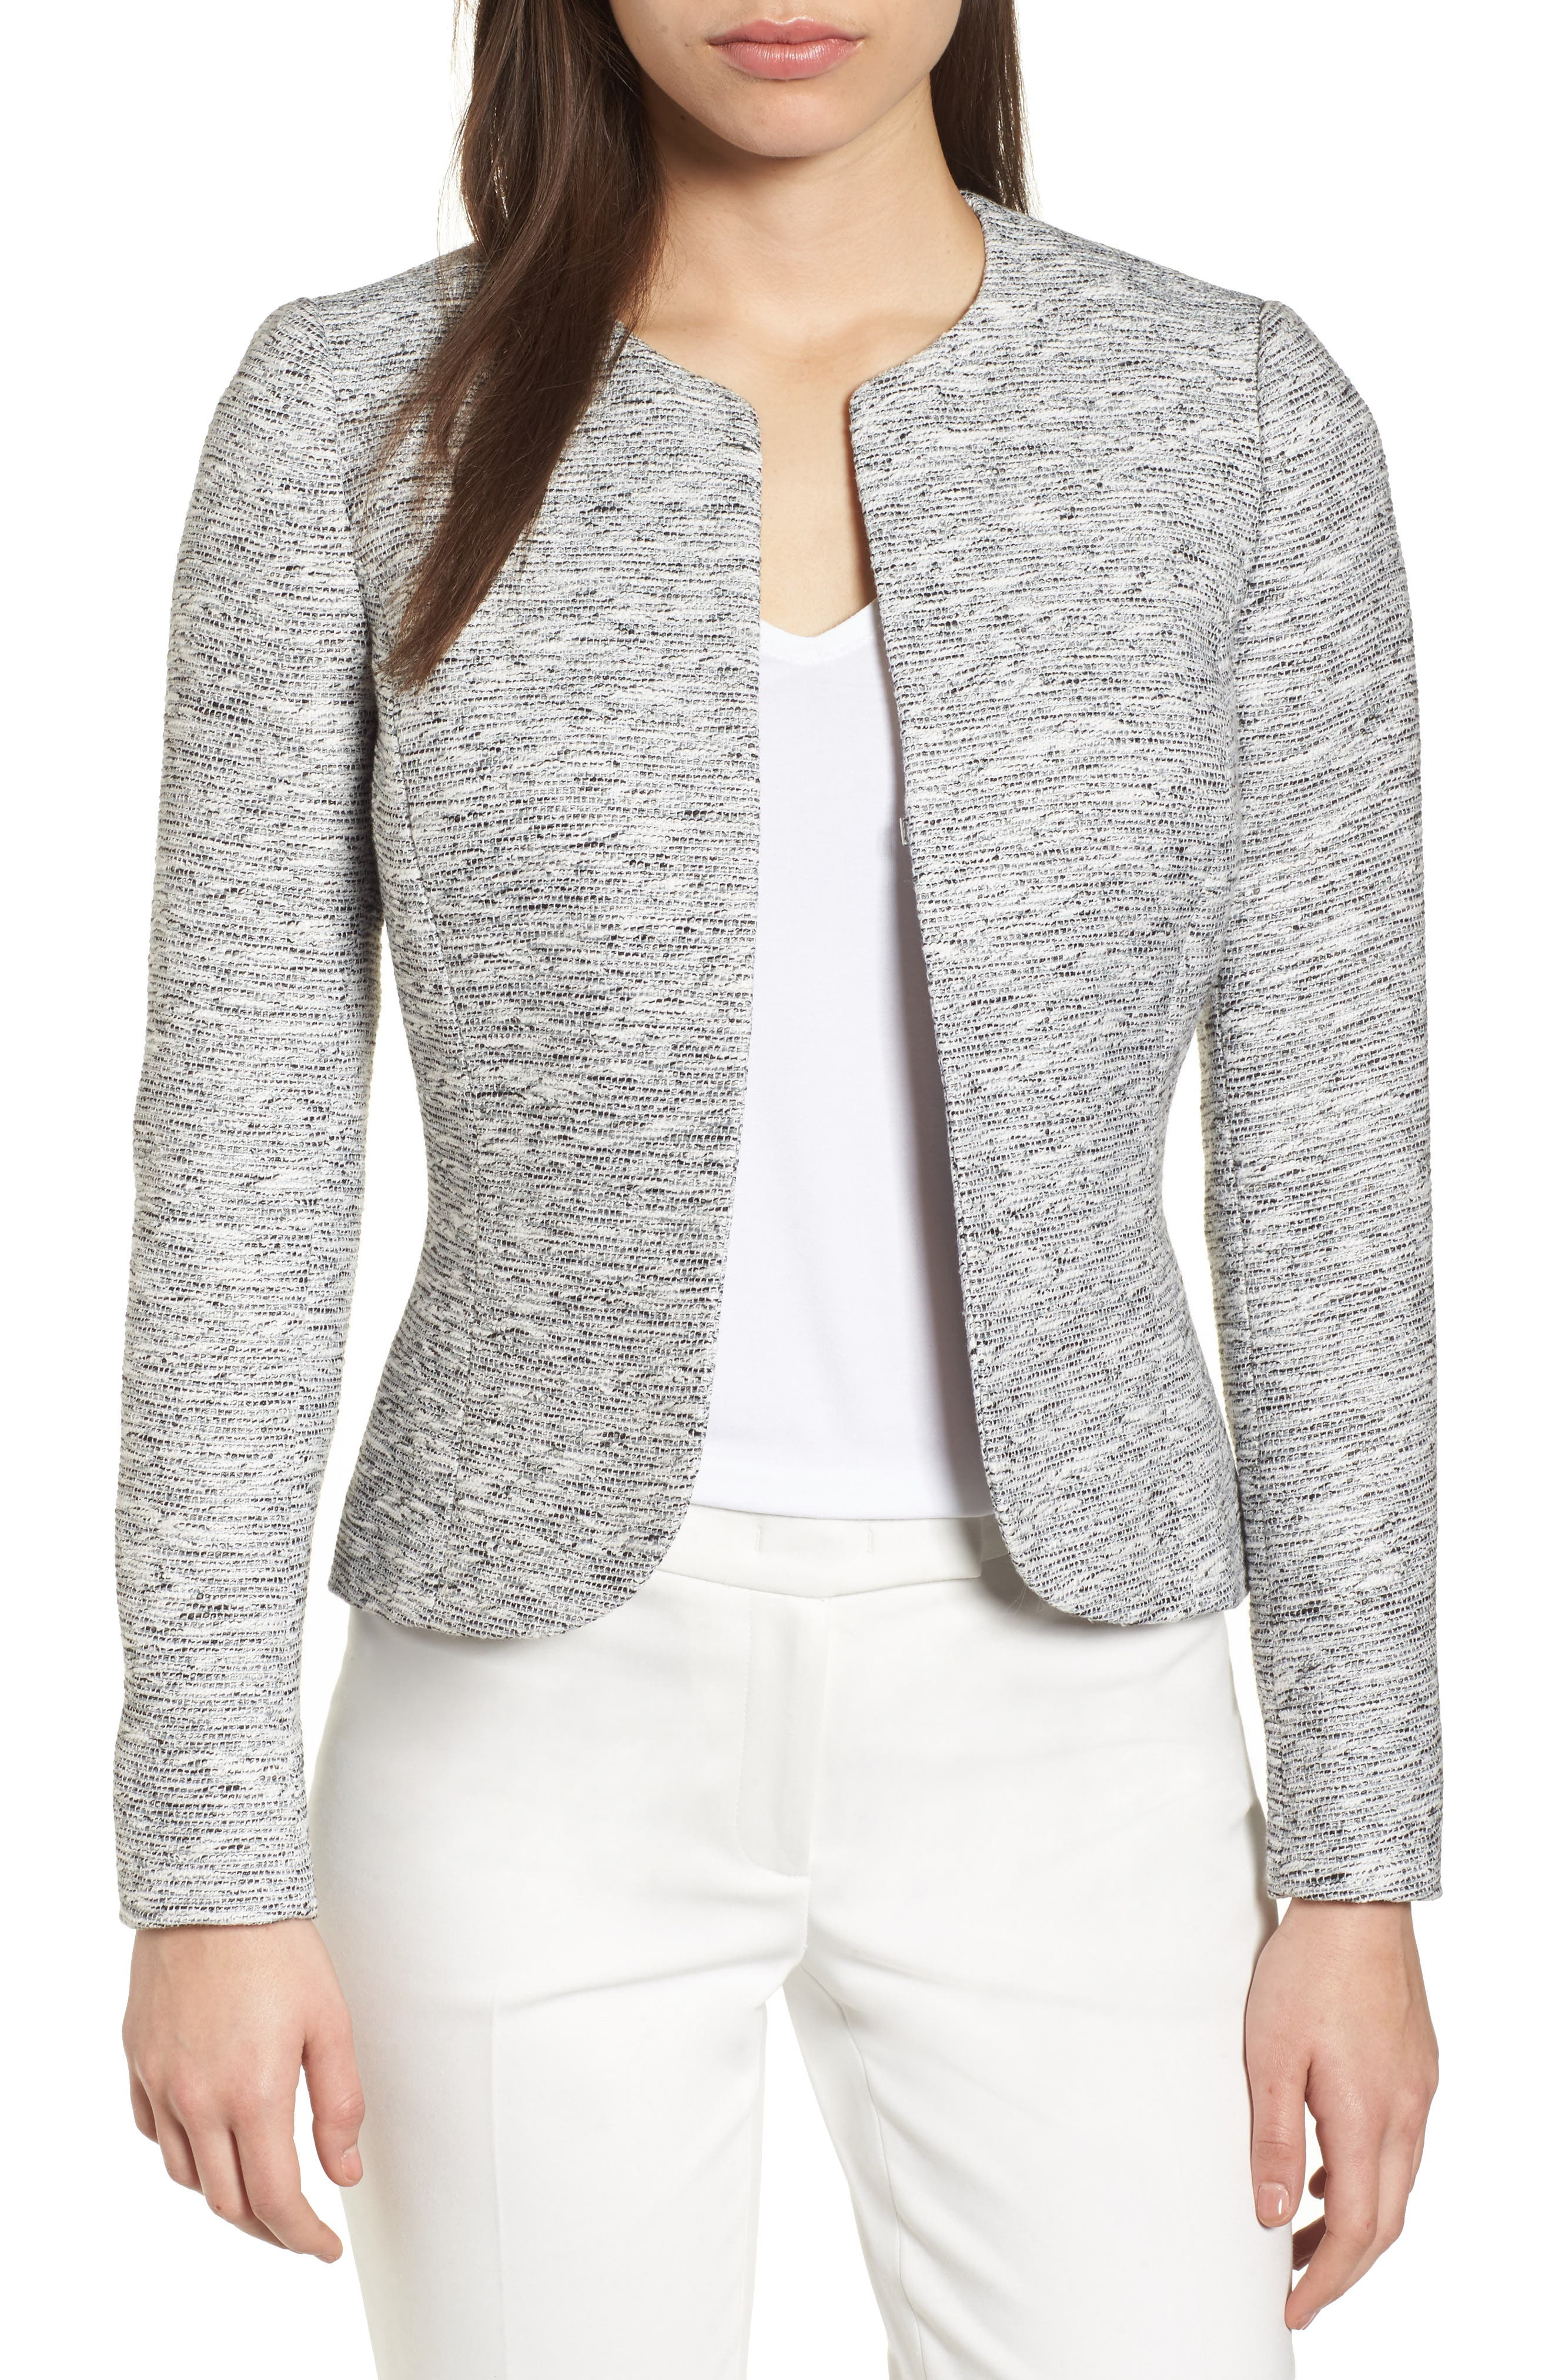 Etched Tweed Jacket,                         Main,                         color, Spring Cloud Combo